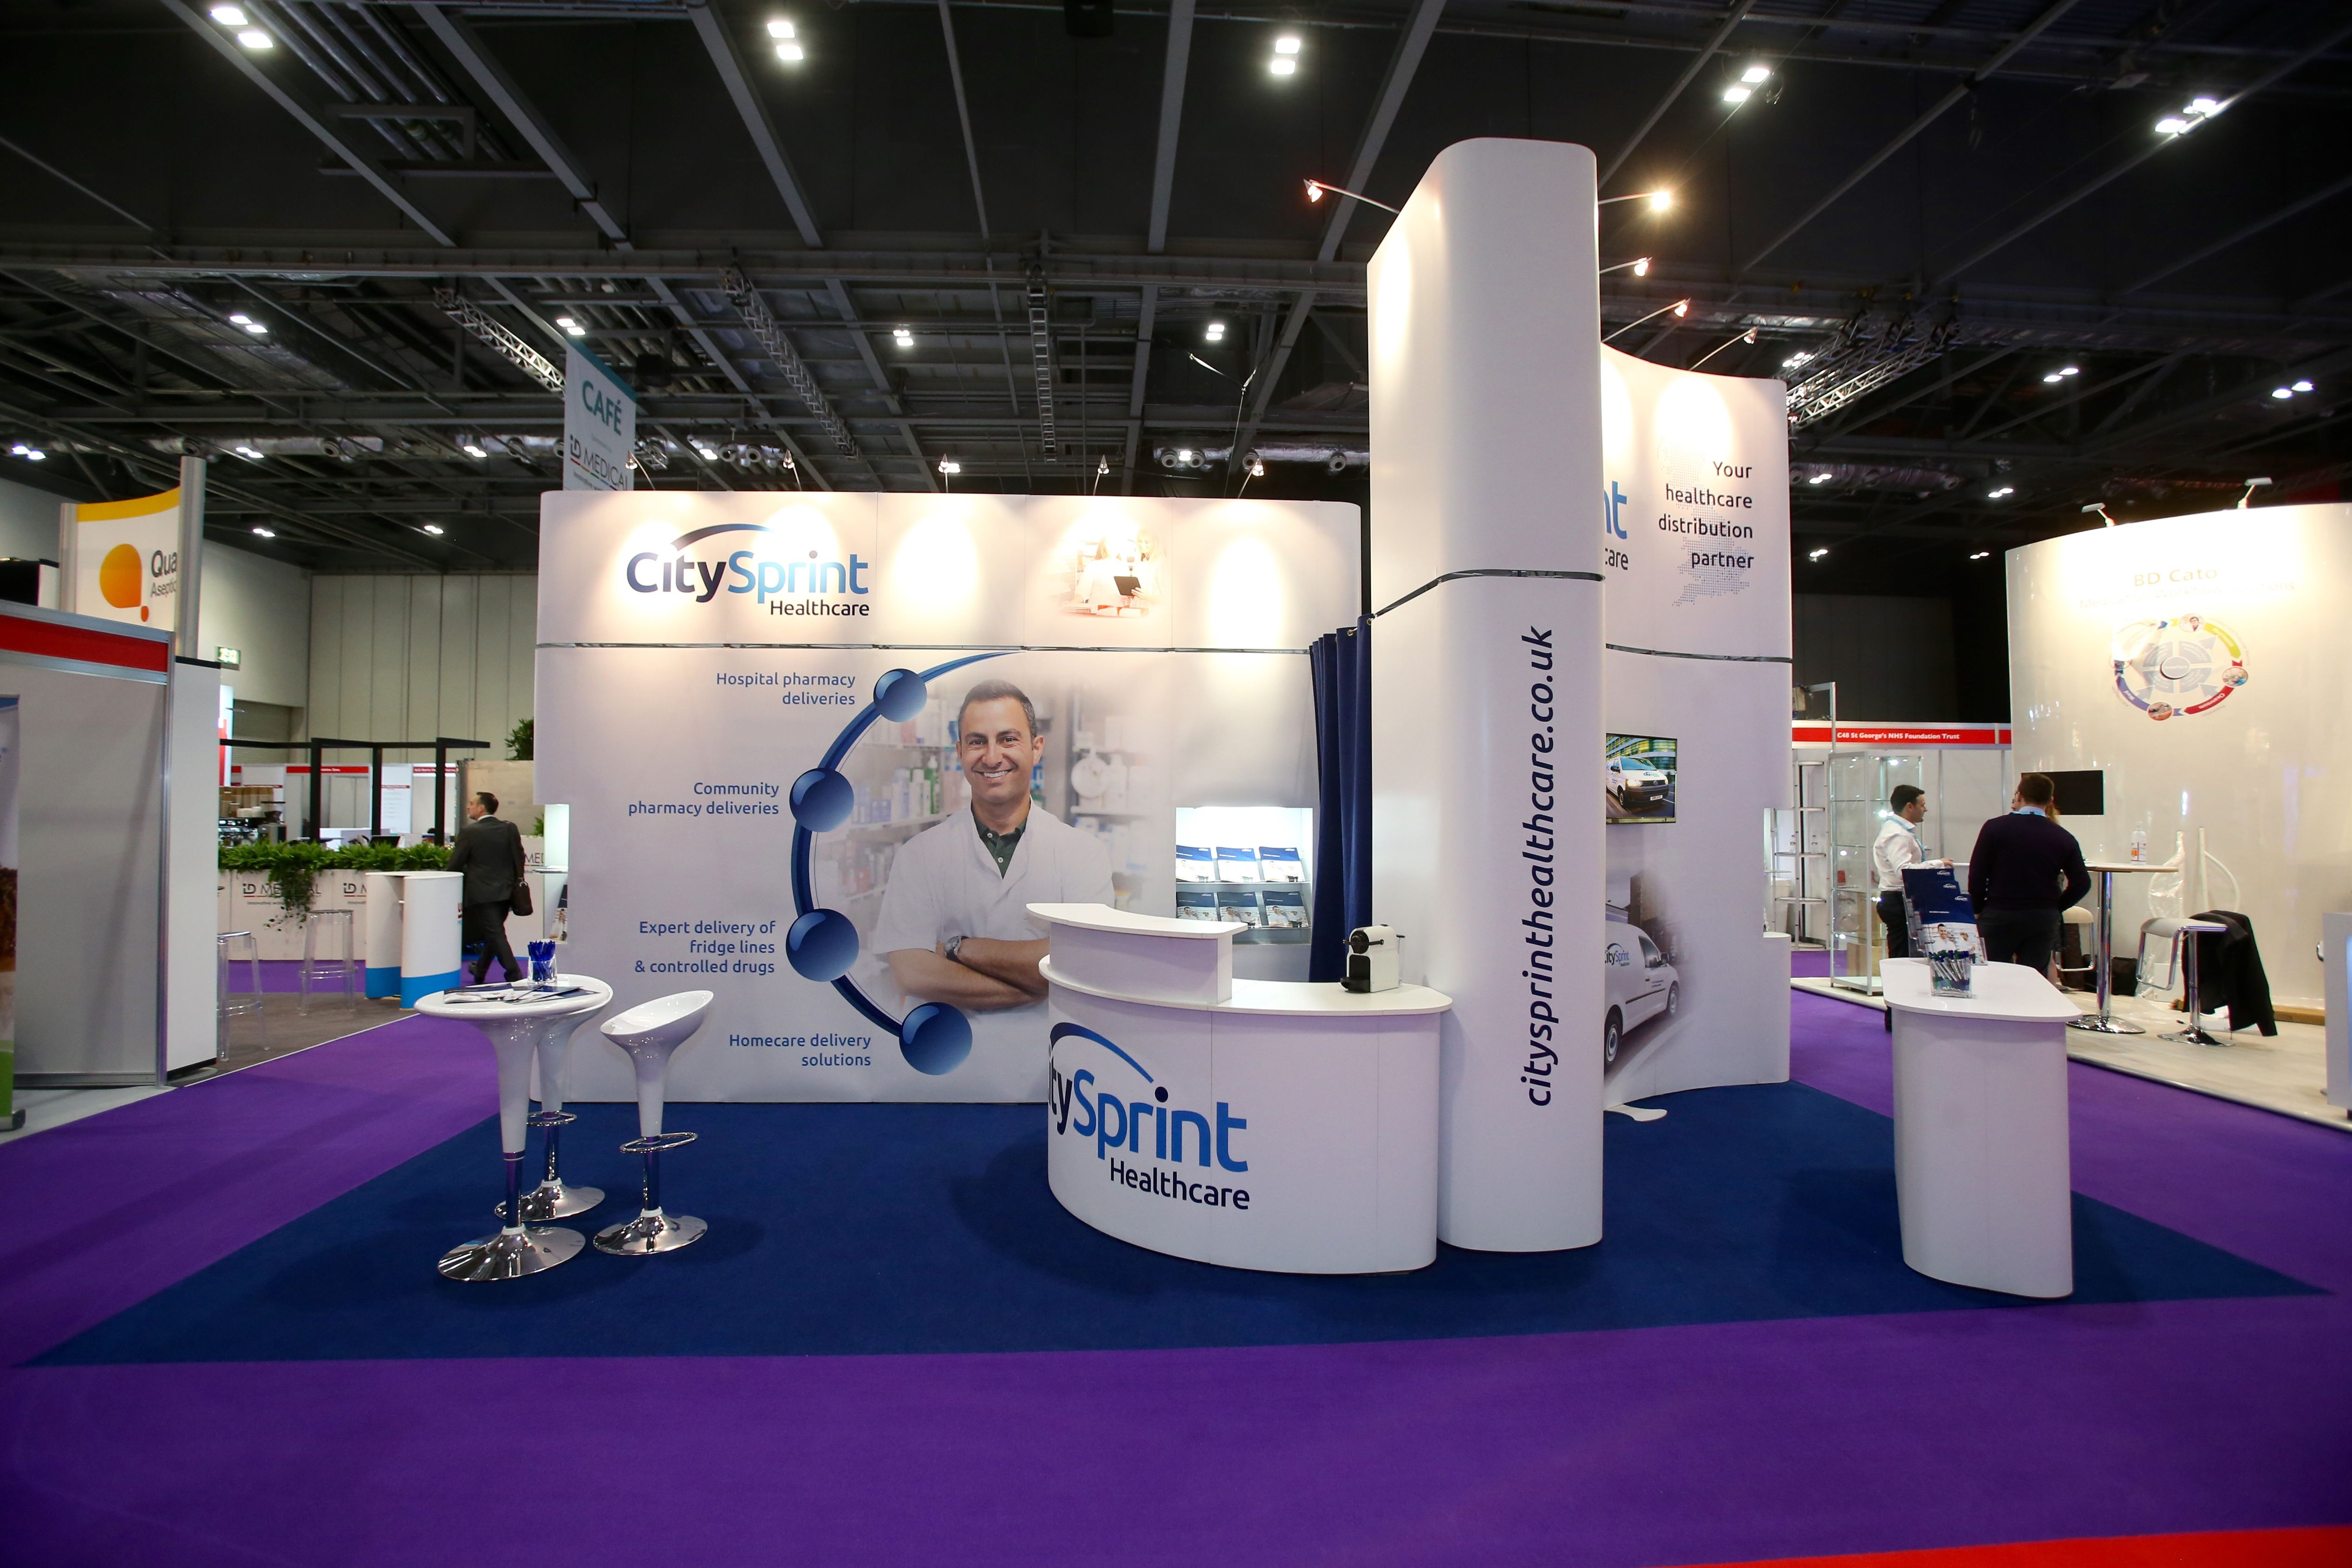 Flexible Exhibition Stands : Flexible exhibition stand for citysprint by quadrant design at cpc